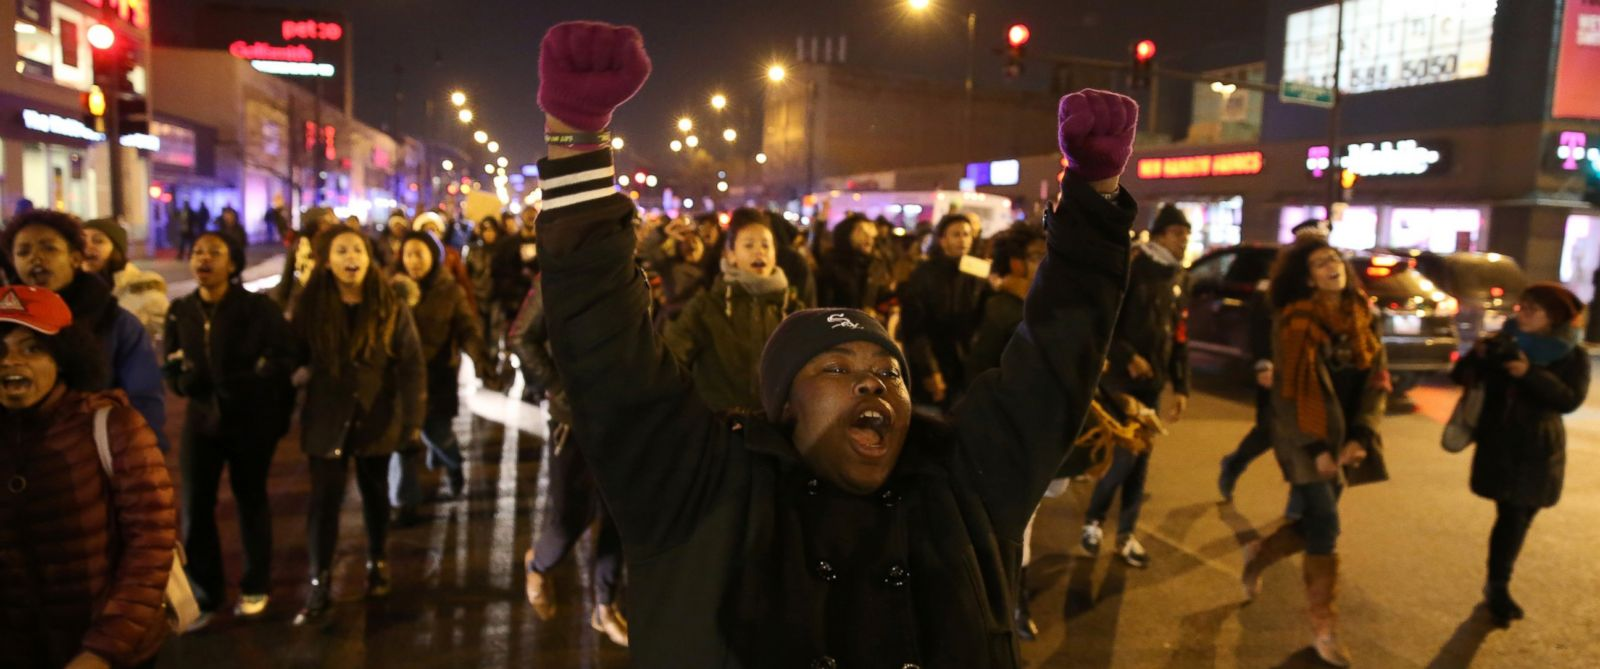 PHOTO: Demonstrators react near Halsted Street and Roosevelt Road in Chicago after the release of the 2014 video of Laquan McDonald being shot by Chicago Police officer Jason Van Dyke, Nov. 24, 2015.